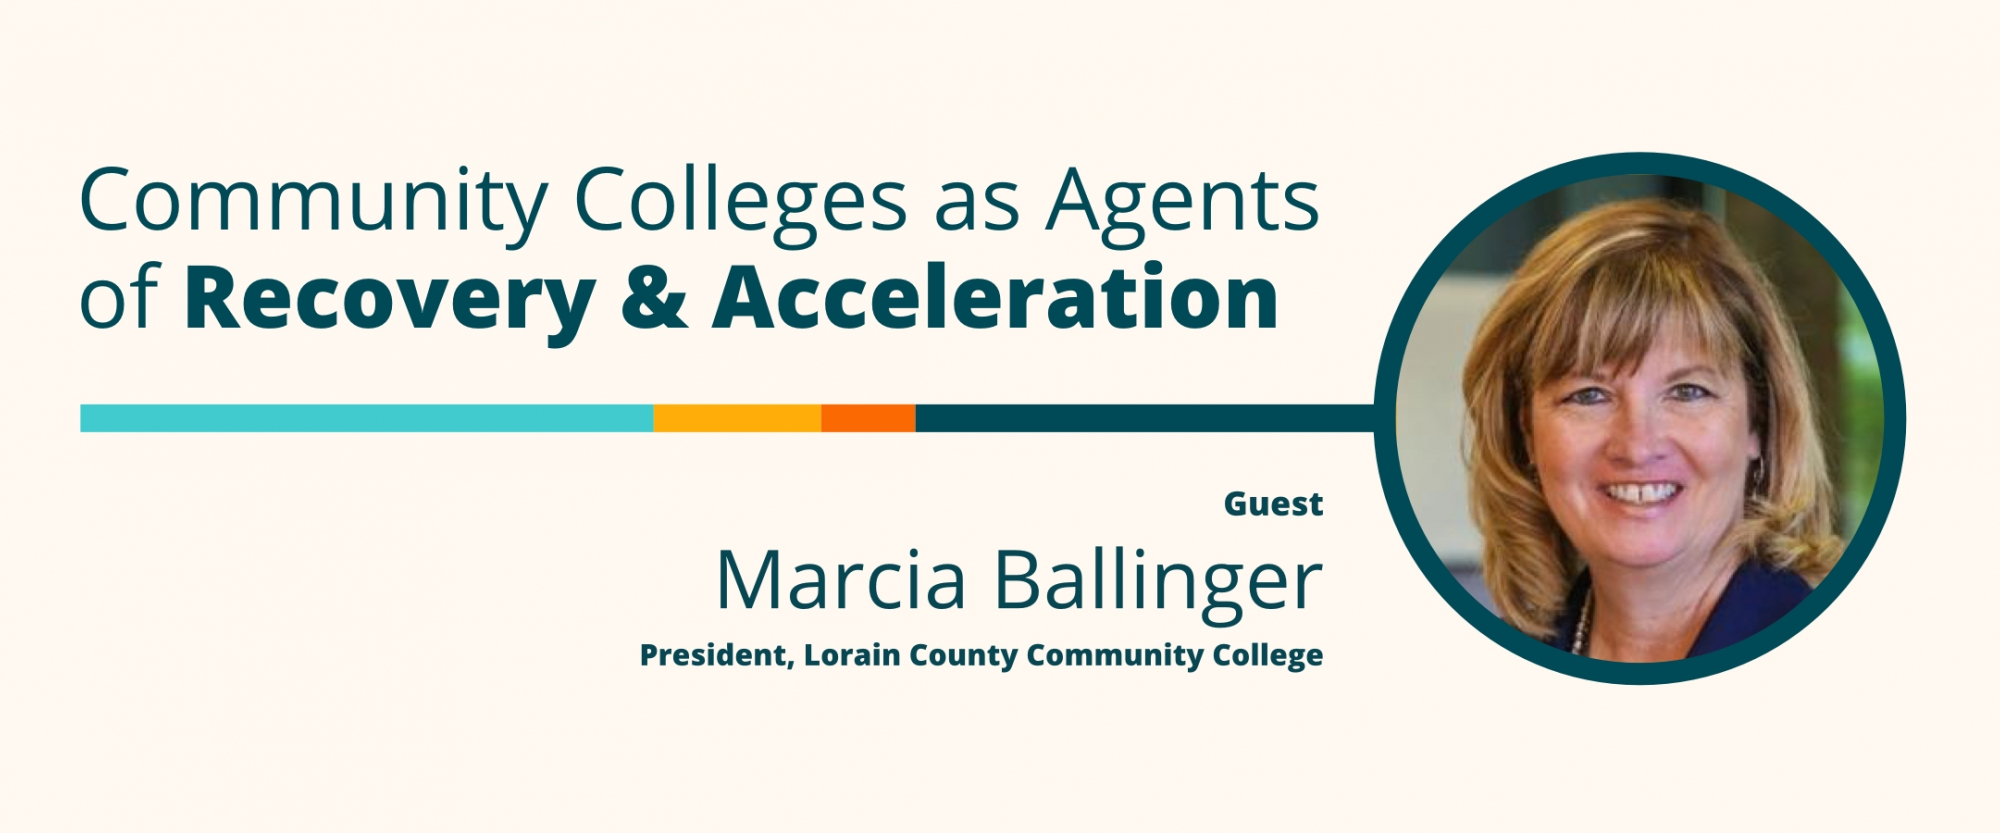 Community Colleges as Agents of Recovery and Acceleration: A Conversation With Marcia Ballinger, Lorain County Community College President